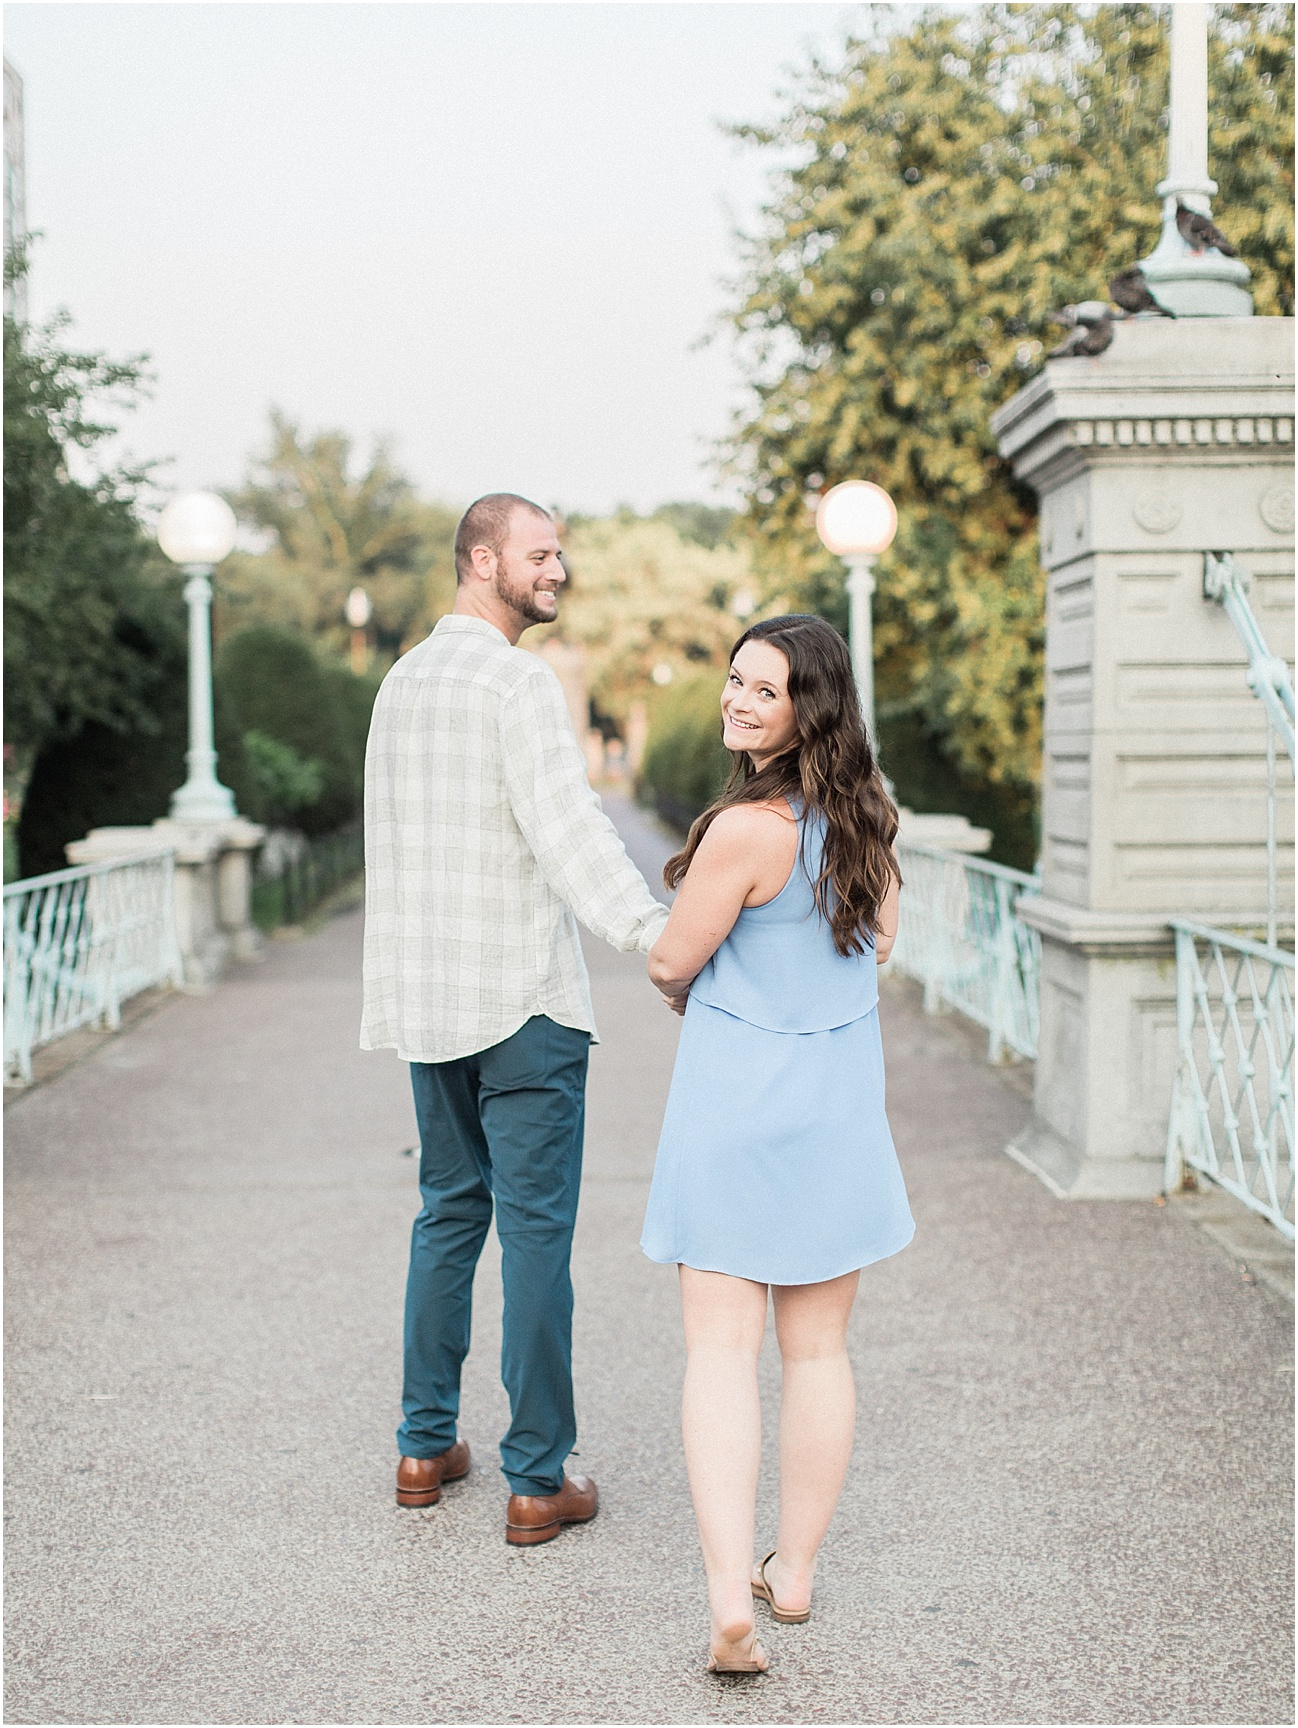 christina_frank_common_engagement_acorn_street_back_bay_cape_cod_boston_wedding_photographer_meredith_jane_photography_photo_0717.jpg